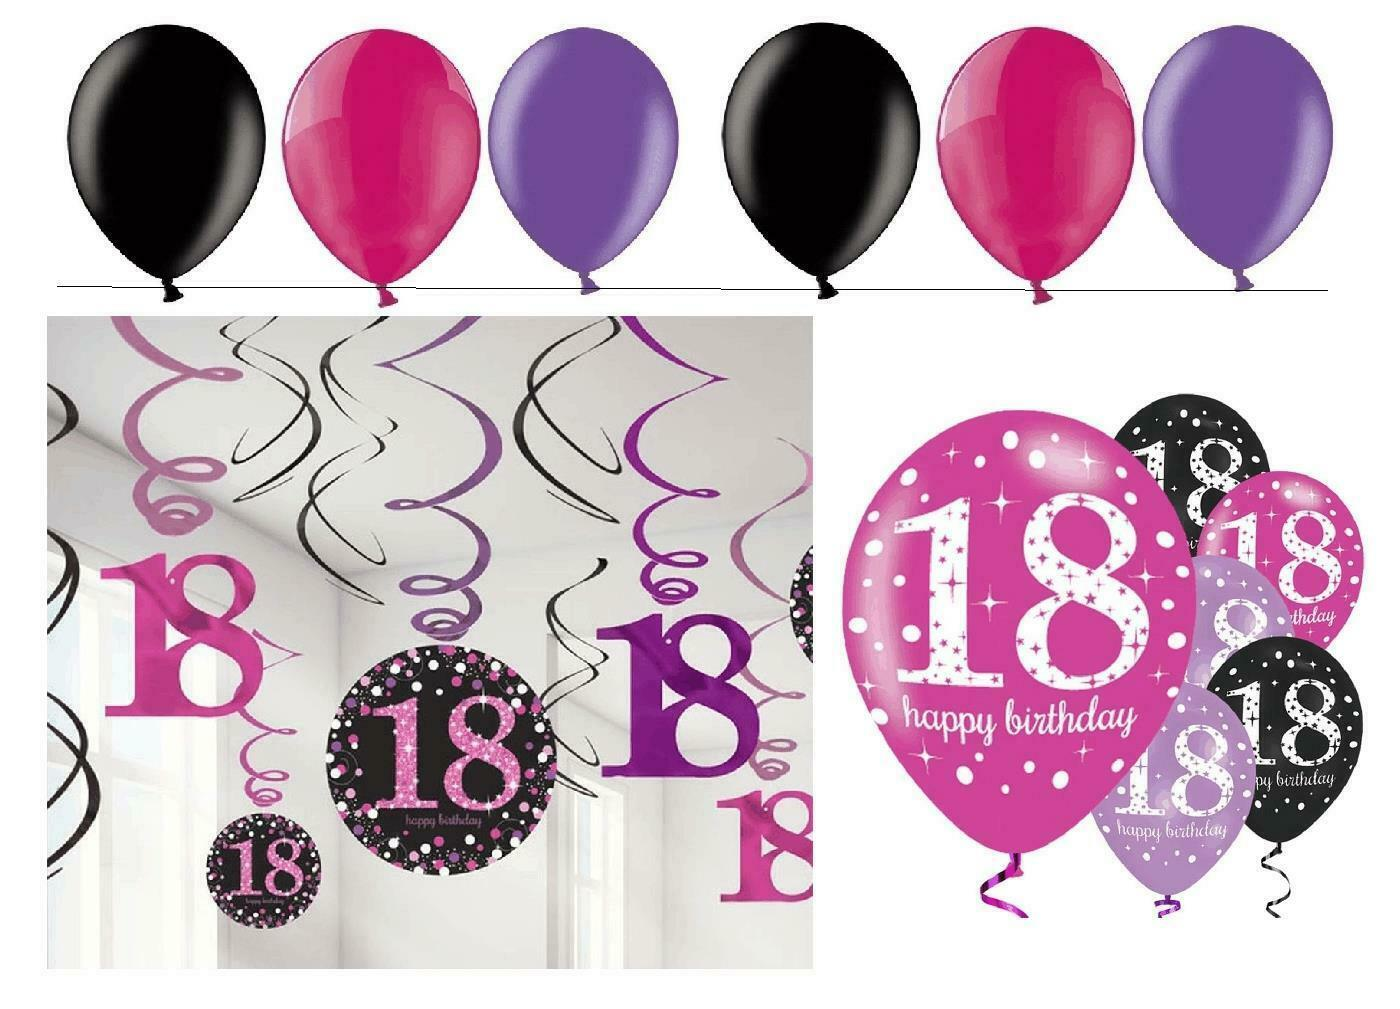 deko set spiralen luftballons zum 18 geburtstag 24. Black Bedroom Furniture Sets. Home Design Ideas